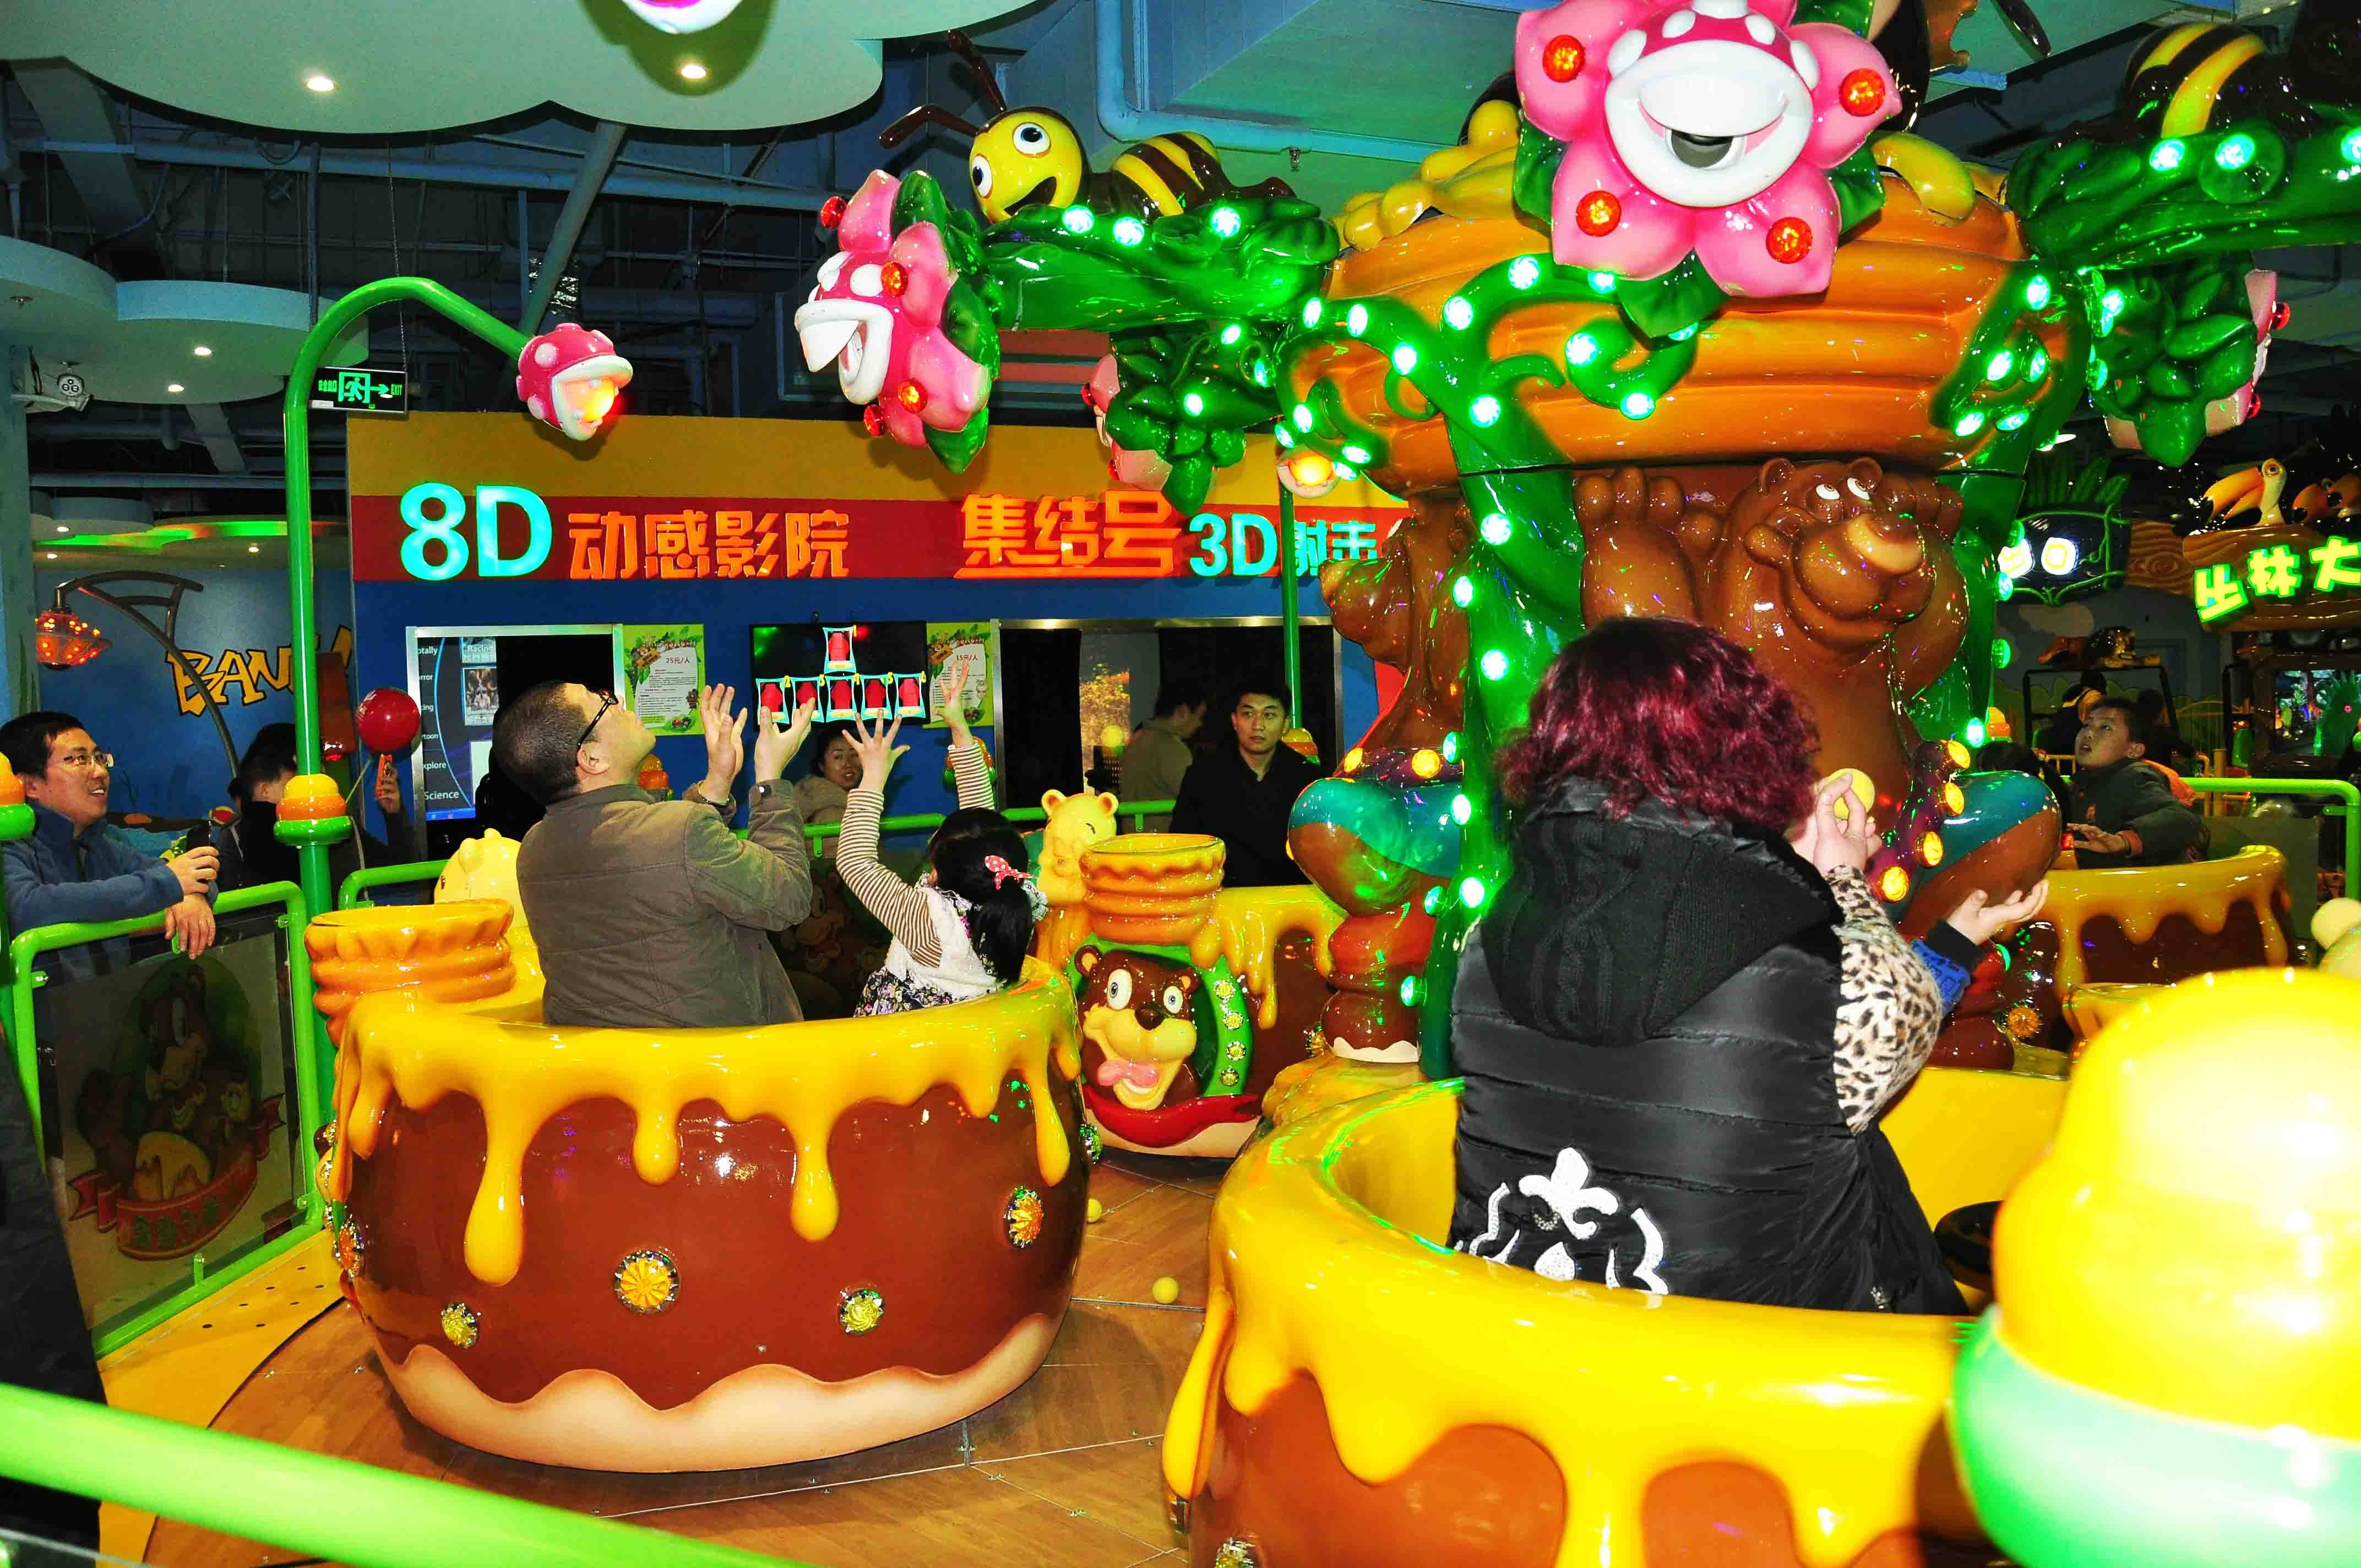 bear and honey, coffee cup, turning cup, indoor amusement park